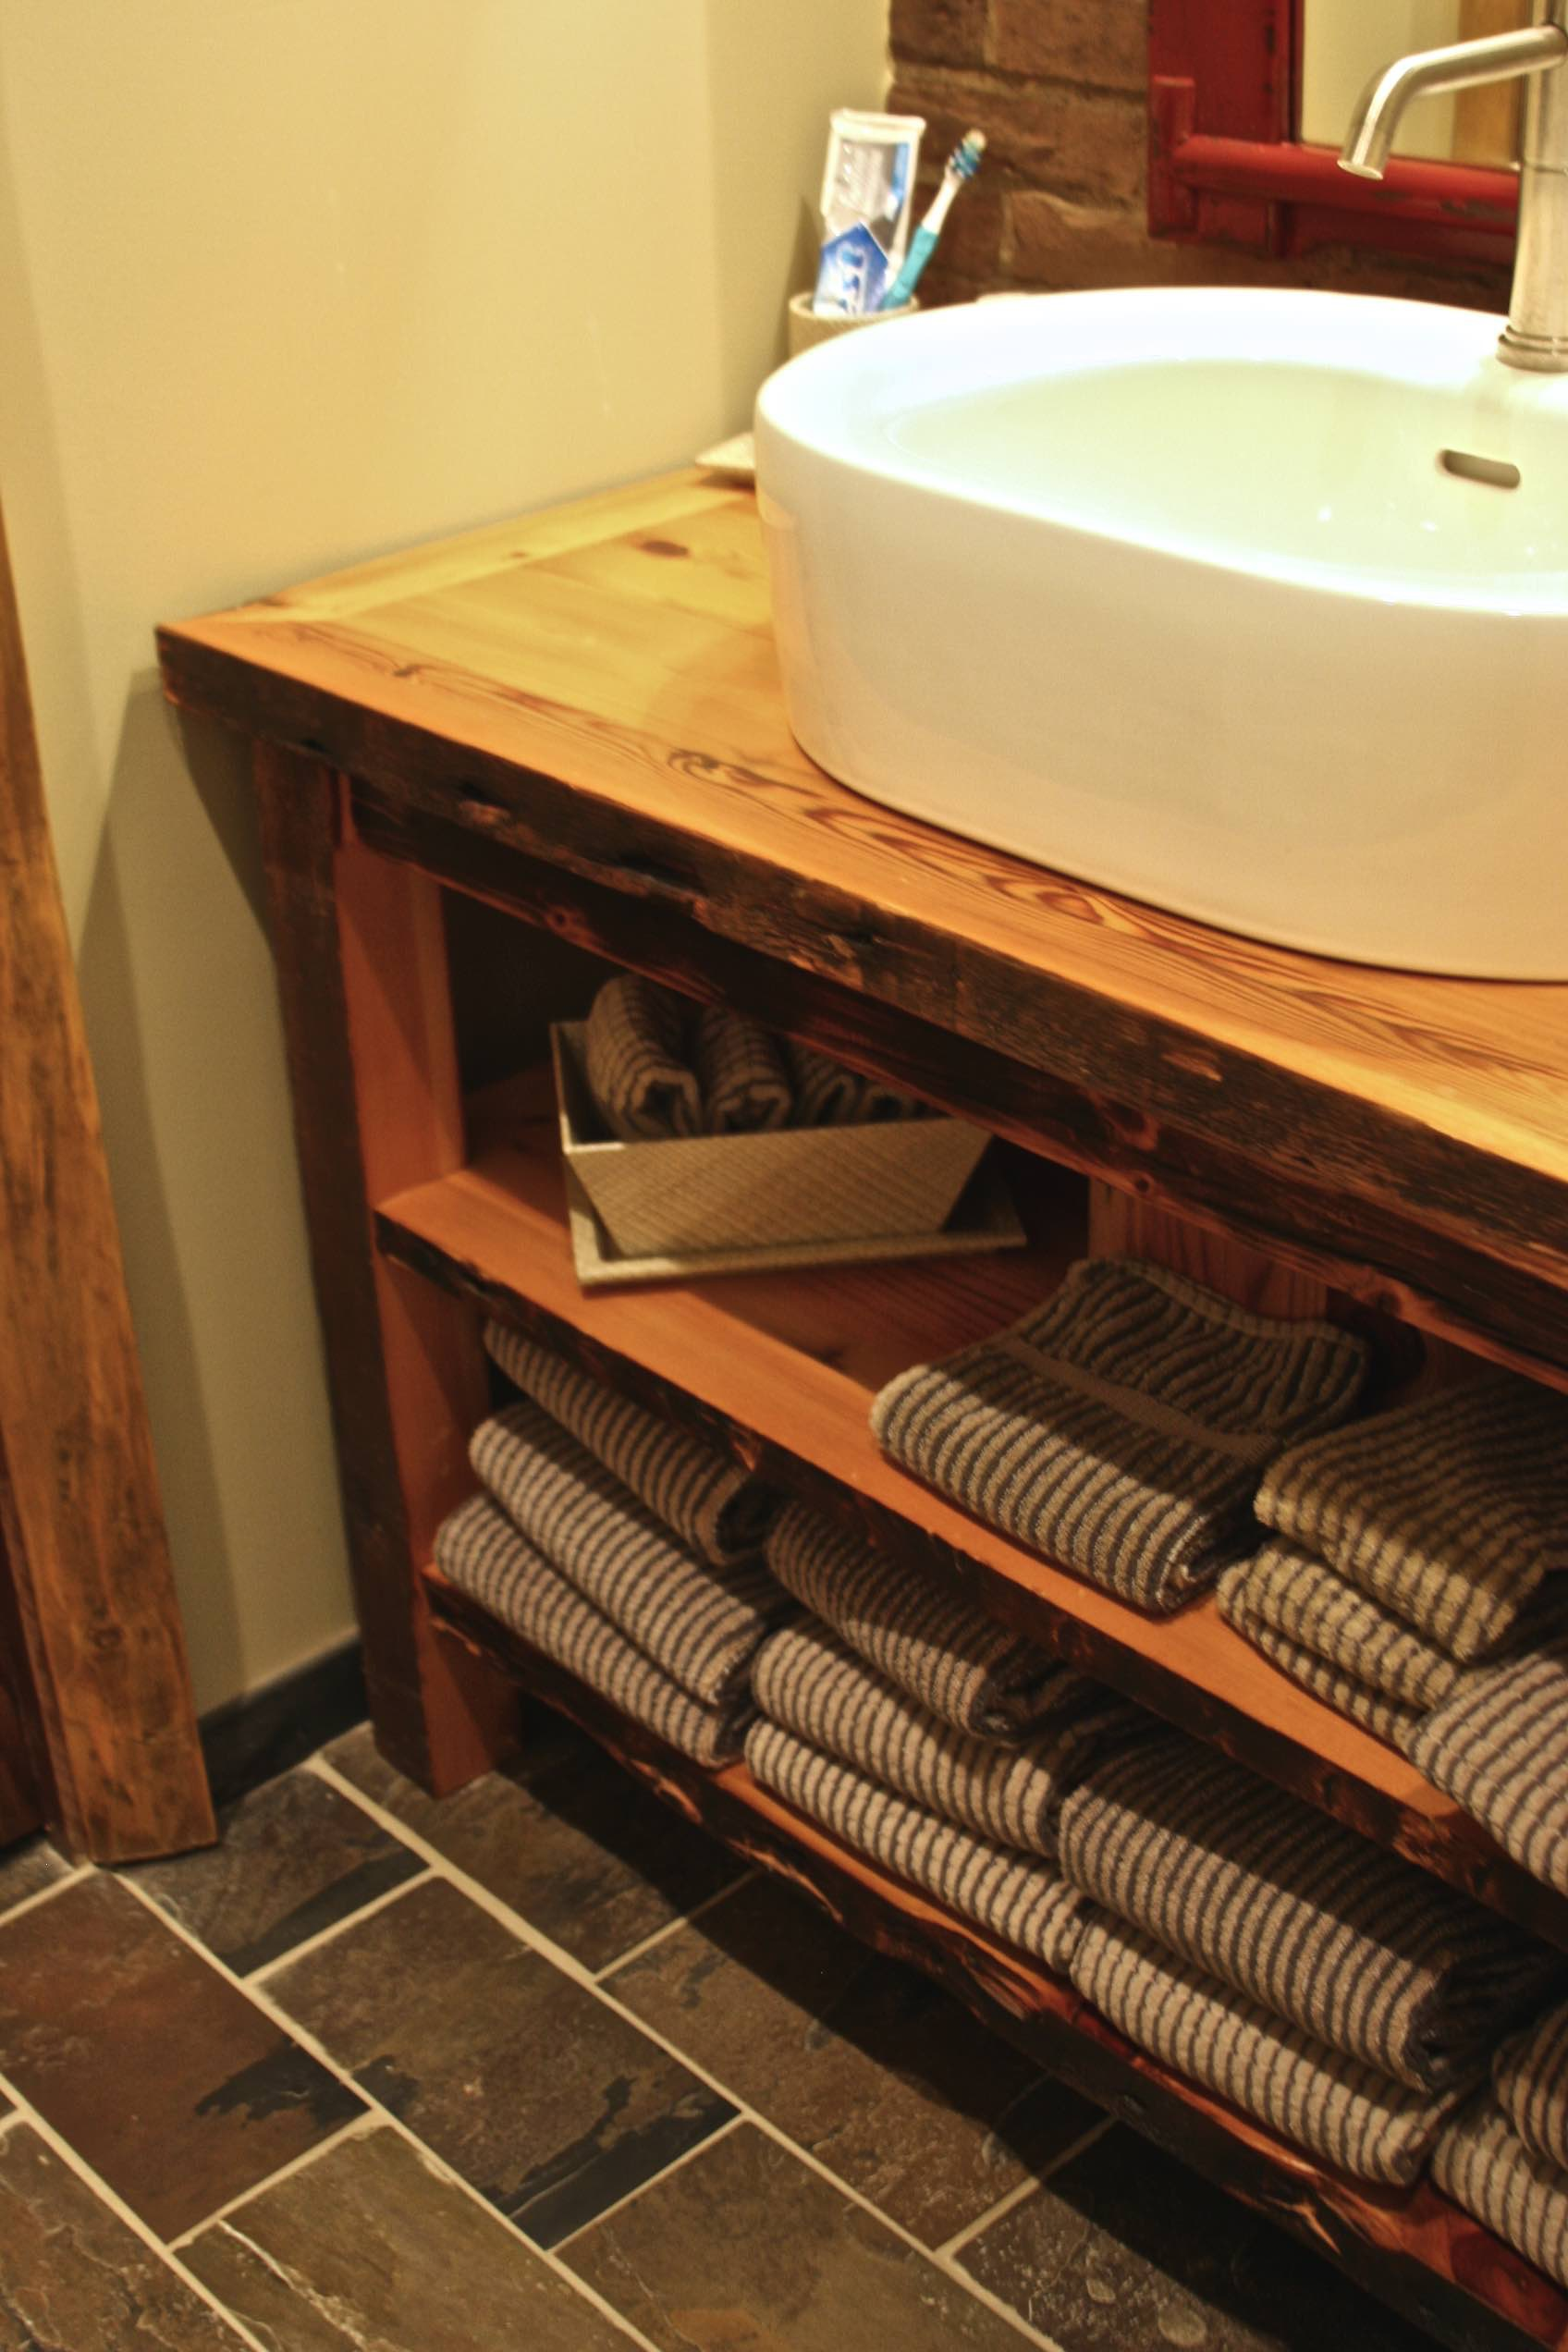 Salvaged barn wood vanity with 2 shelves.